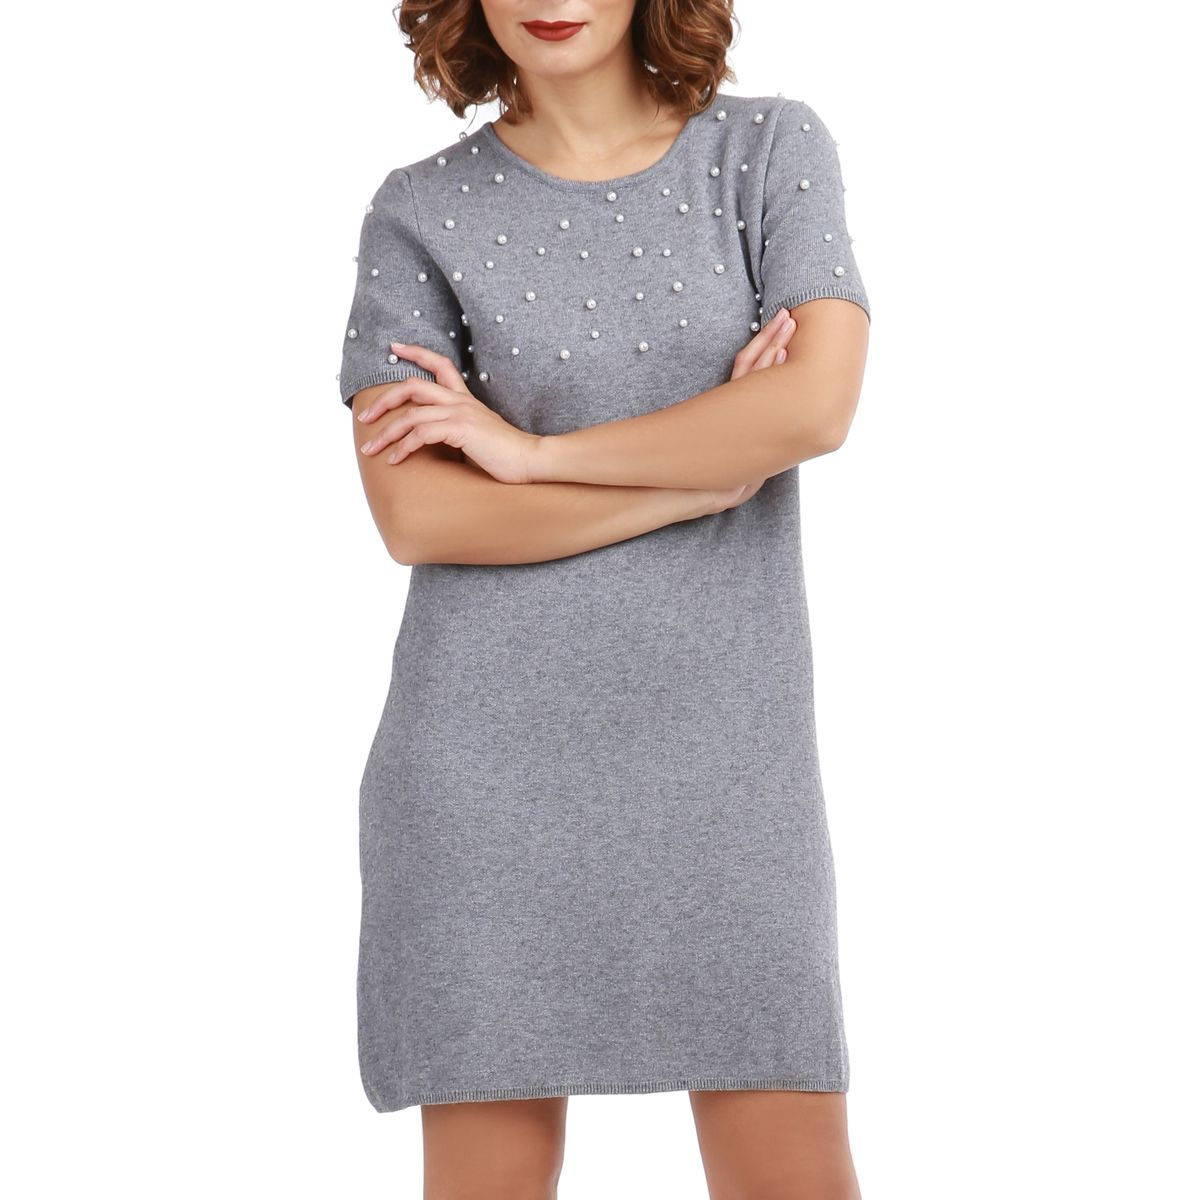 Robe Pull Femme Robe Pull Grise à Manches Courtes Et Perles